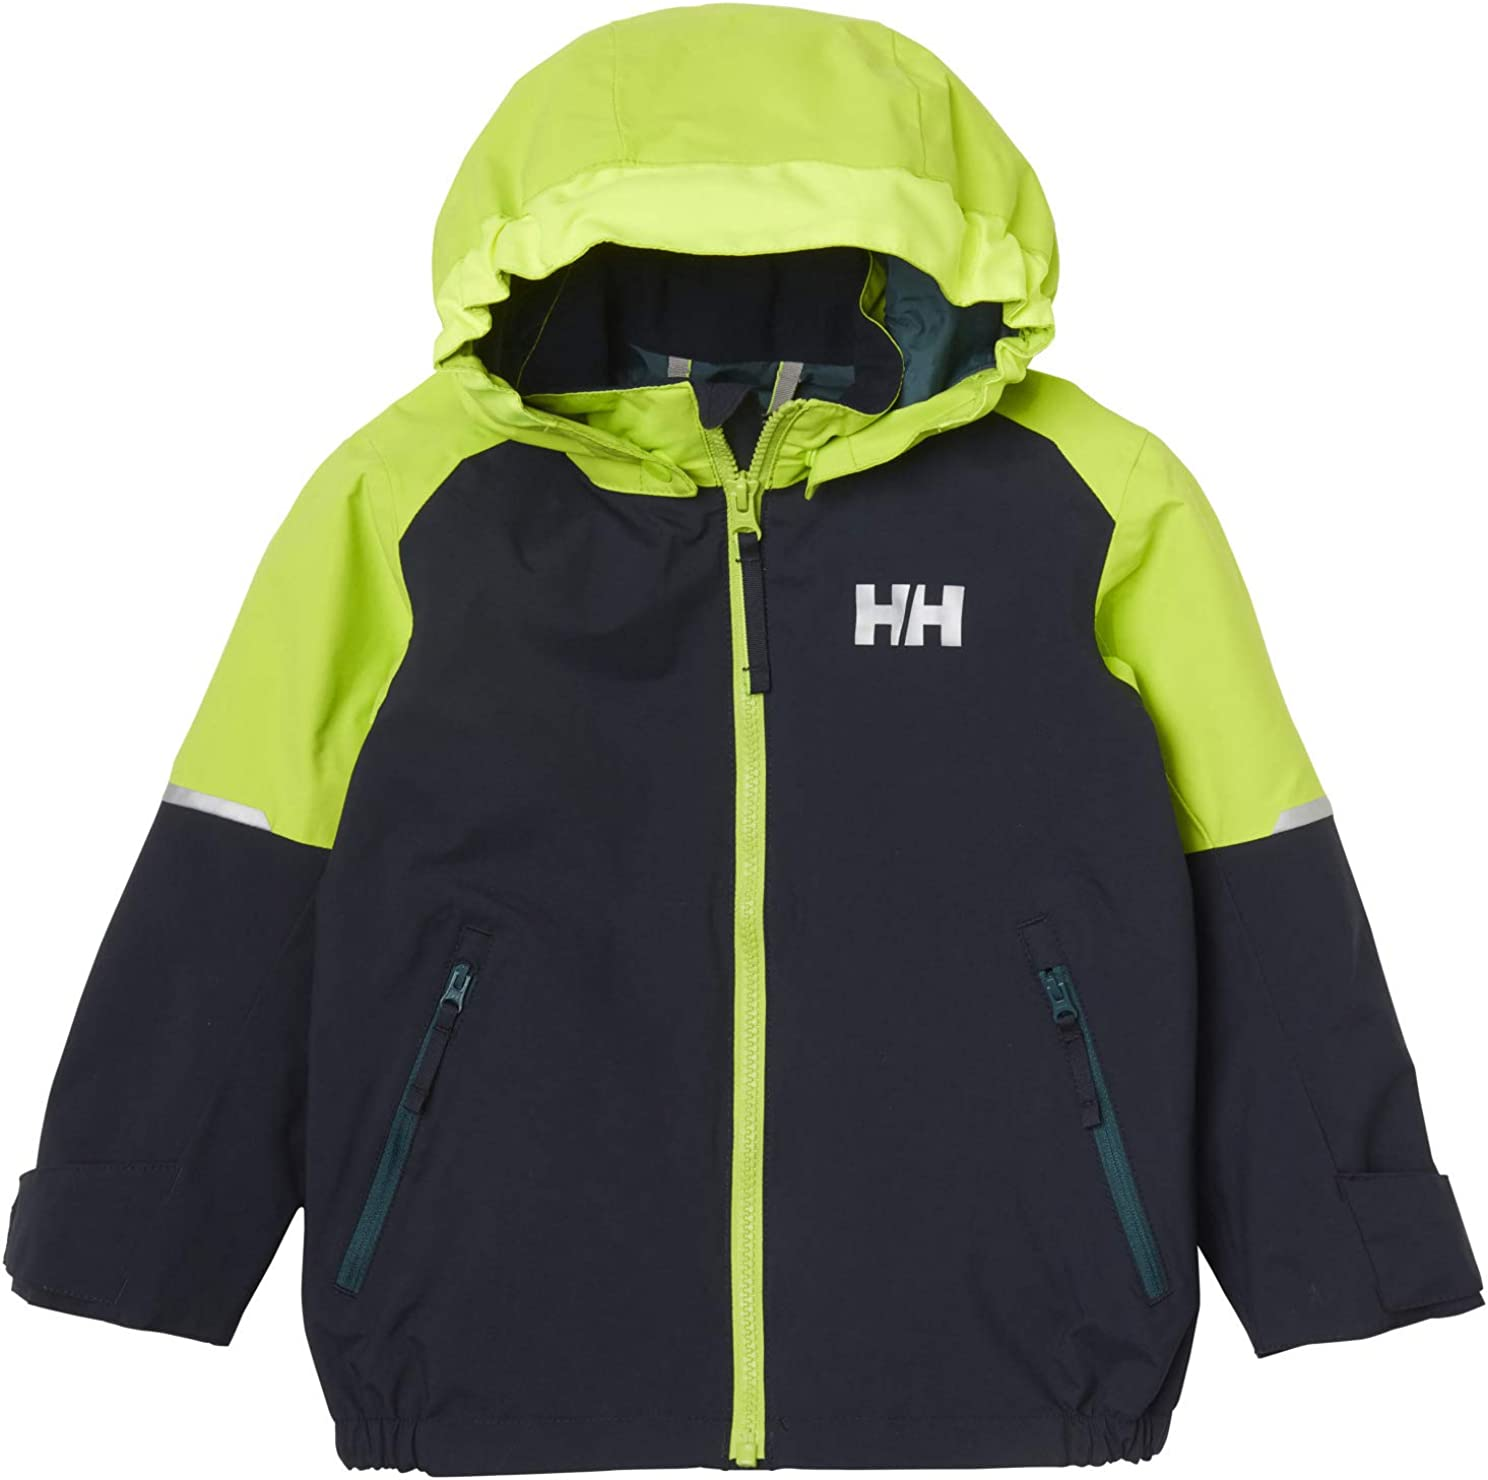 Helly-Hansen unisex-adult Kids Shelter Waterproof Breathable All-weather Jacket